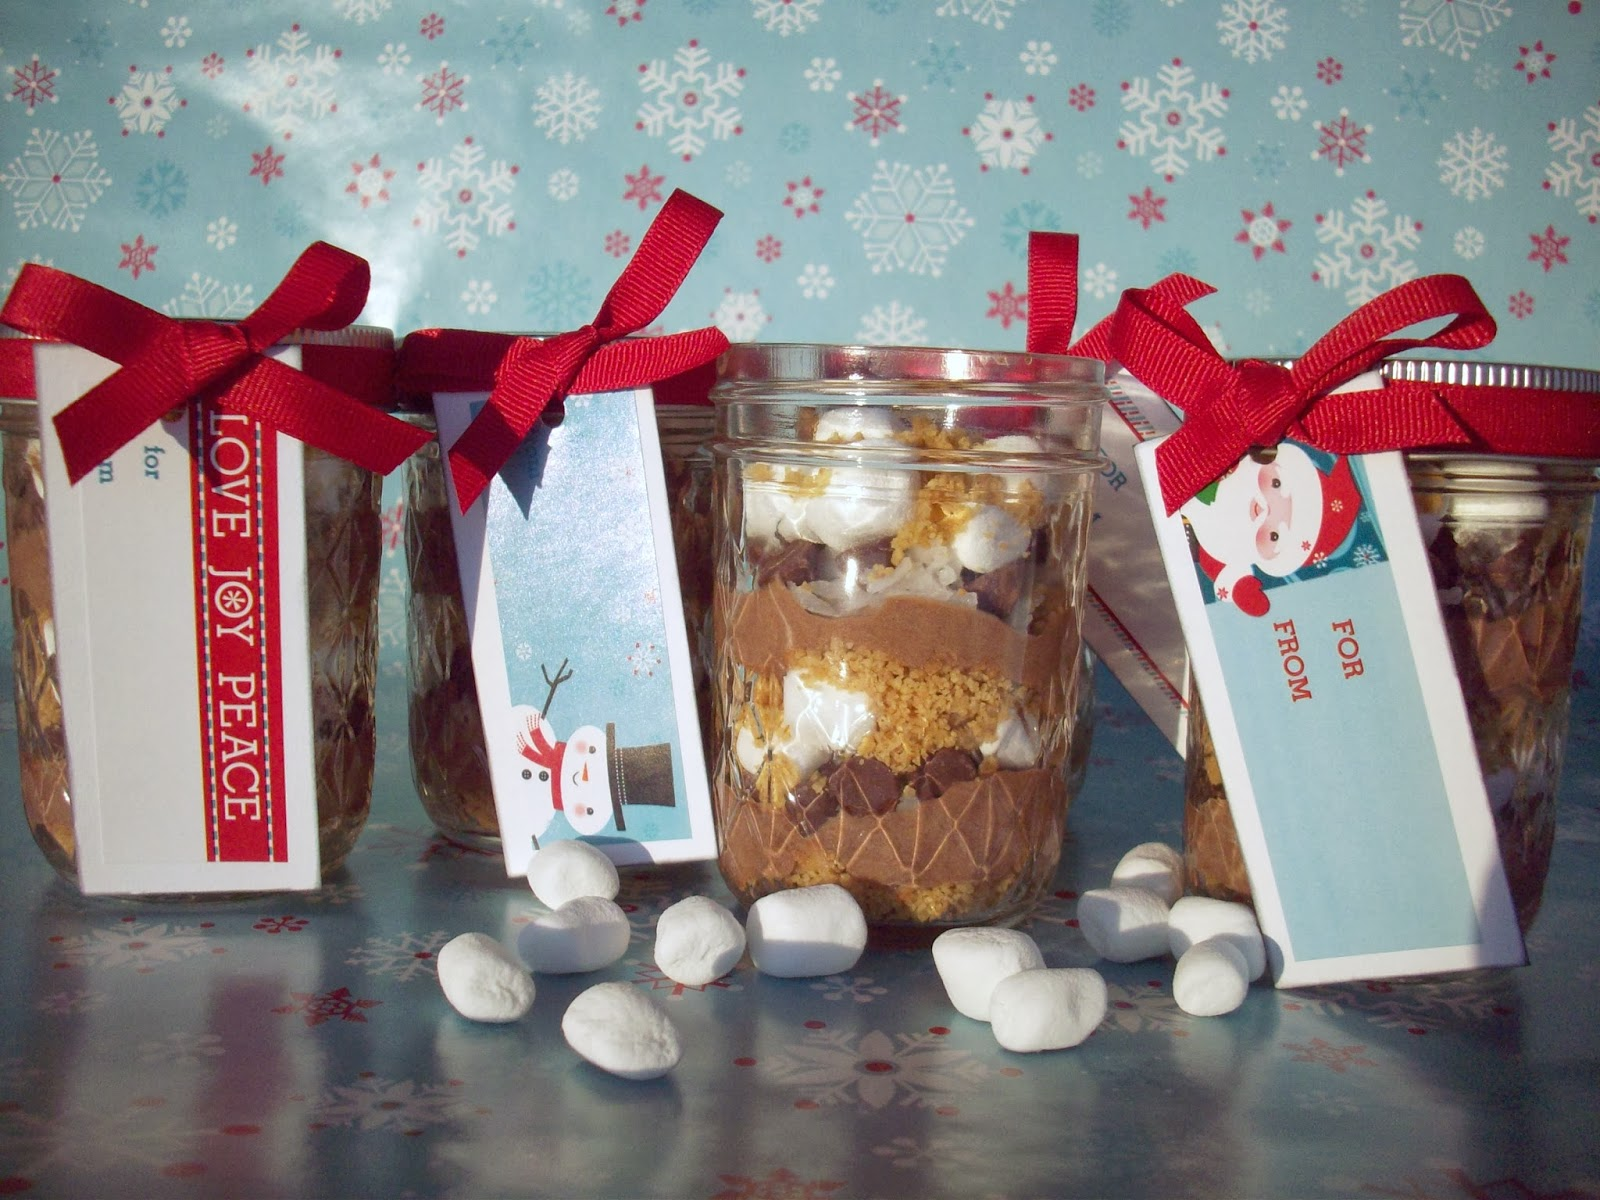 Rocky Road Christmas Pudding Rocky Road Pudding in a Jar